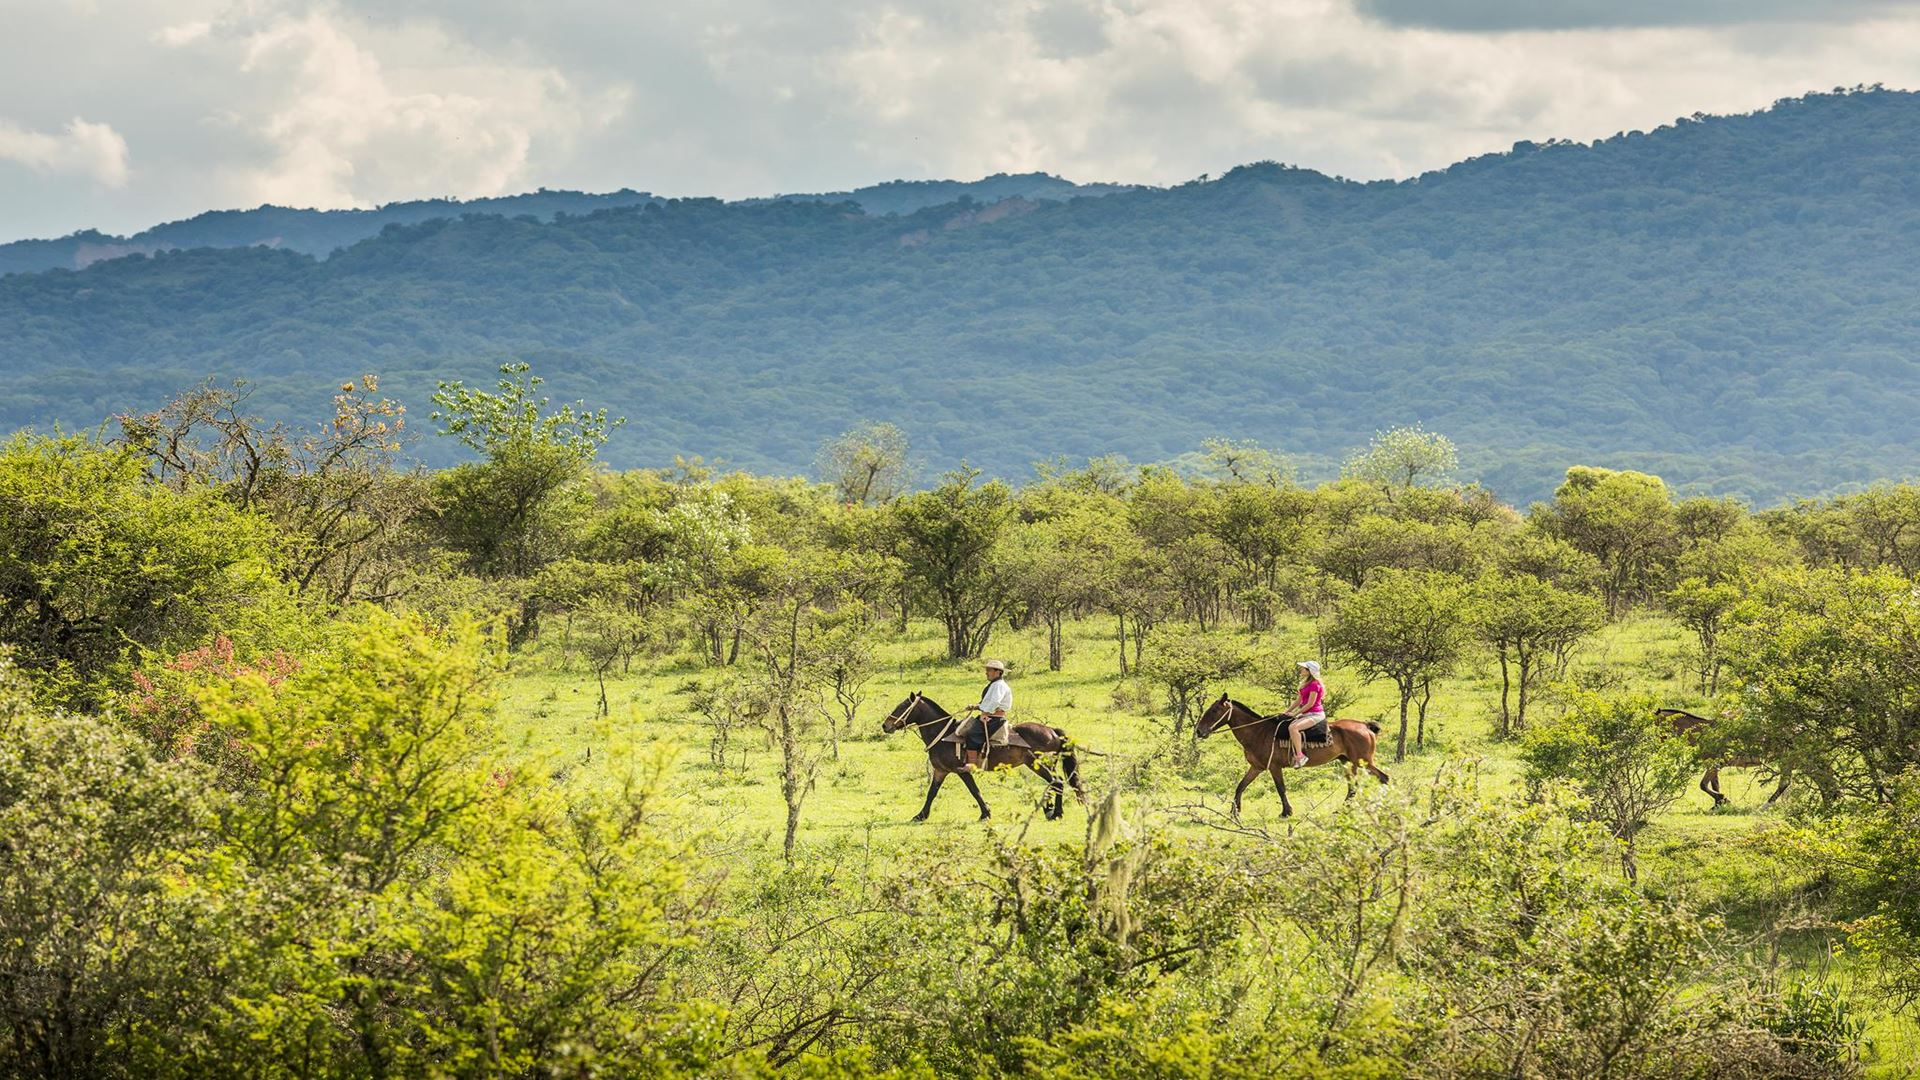 HORSEBACK RIDING TO SANTA RUFINA